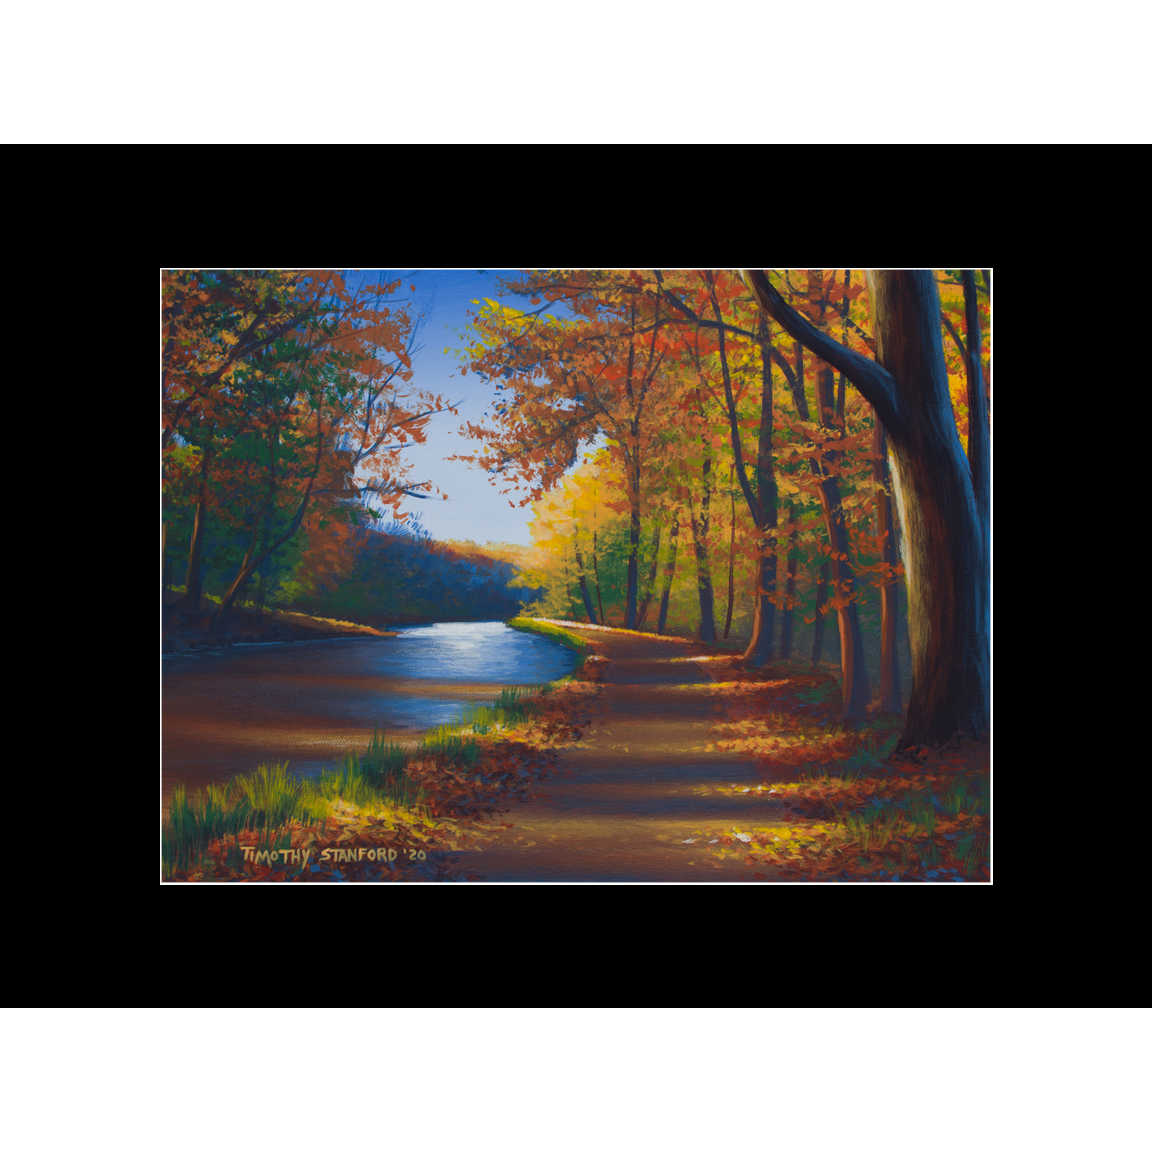 """Fine art matted print of Timothy Stanford's original acrylic painting """"Brilliant Path"""""""